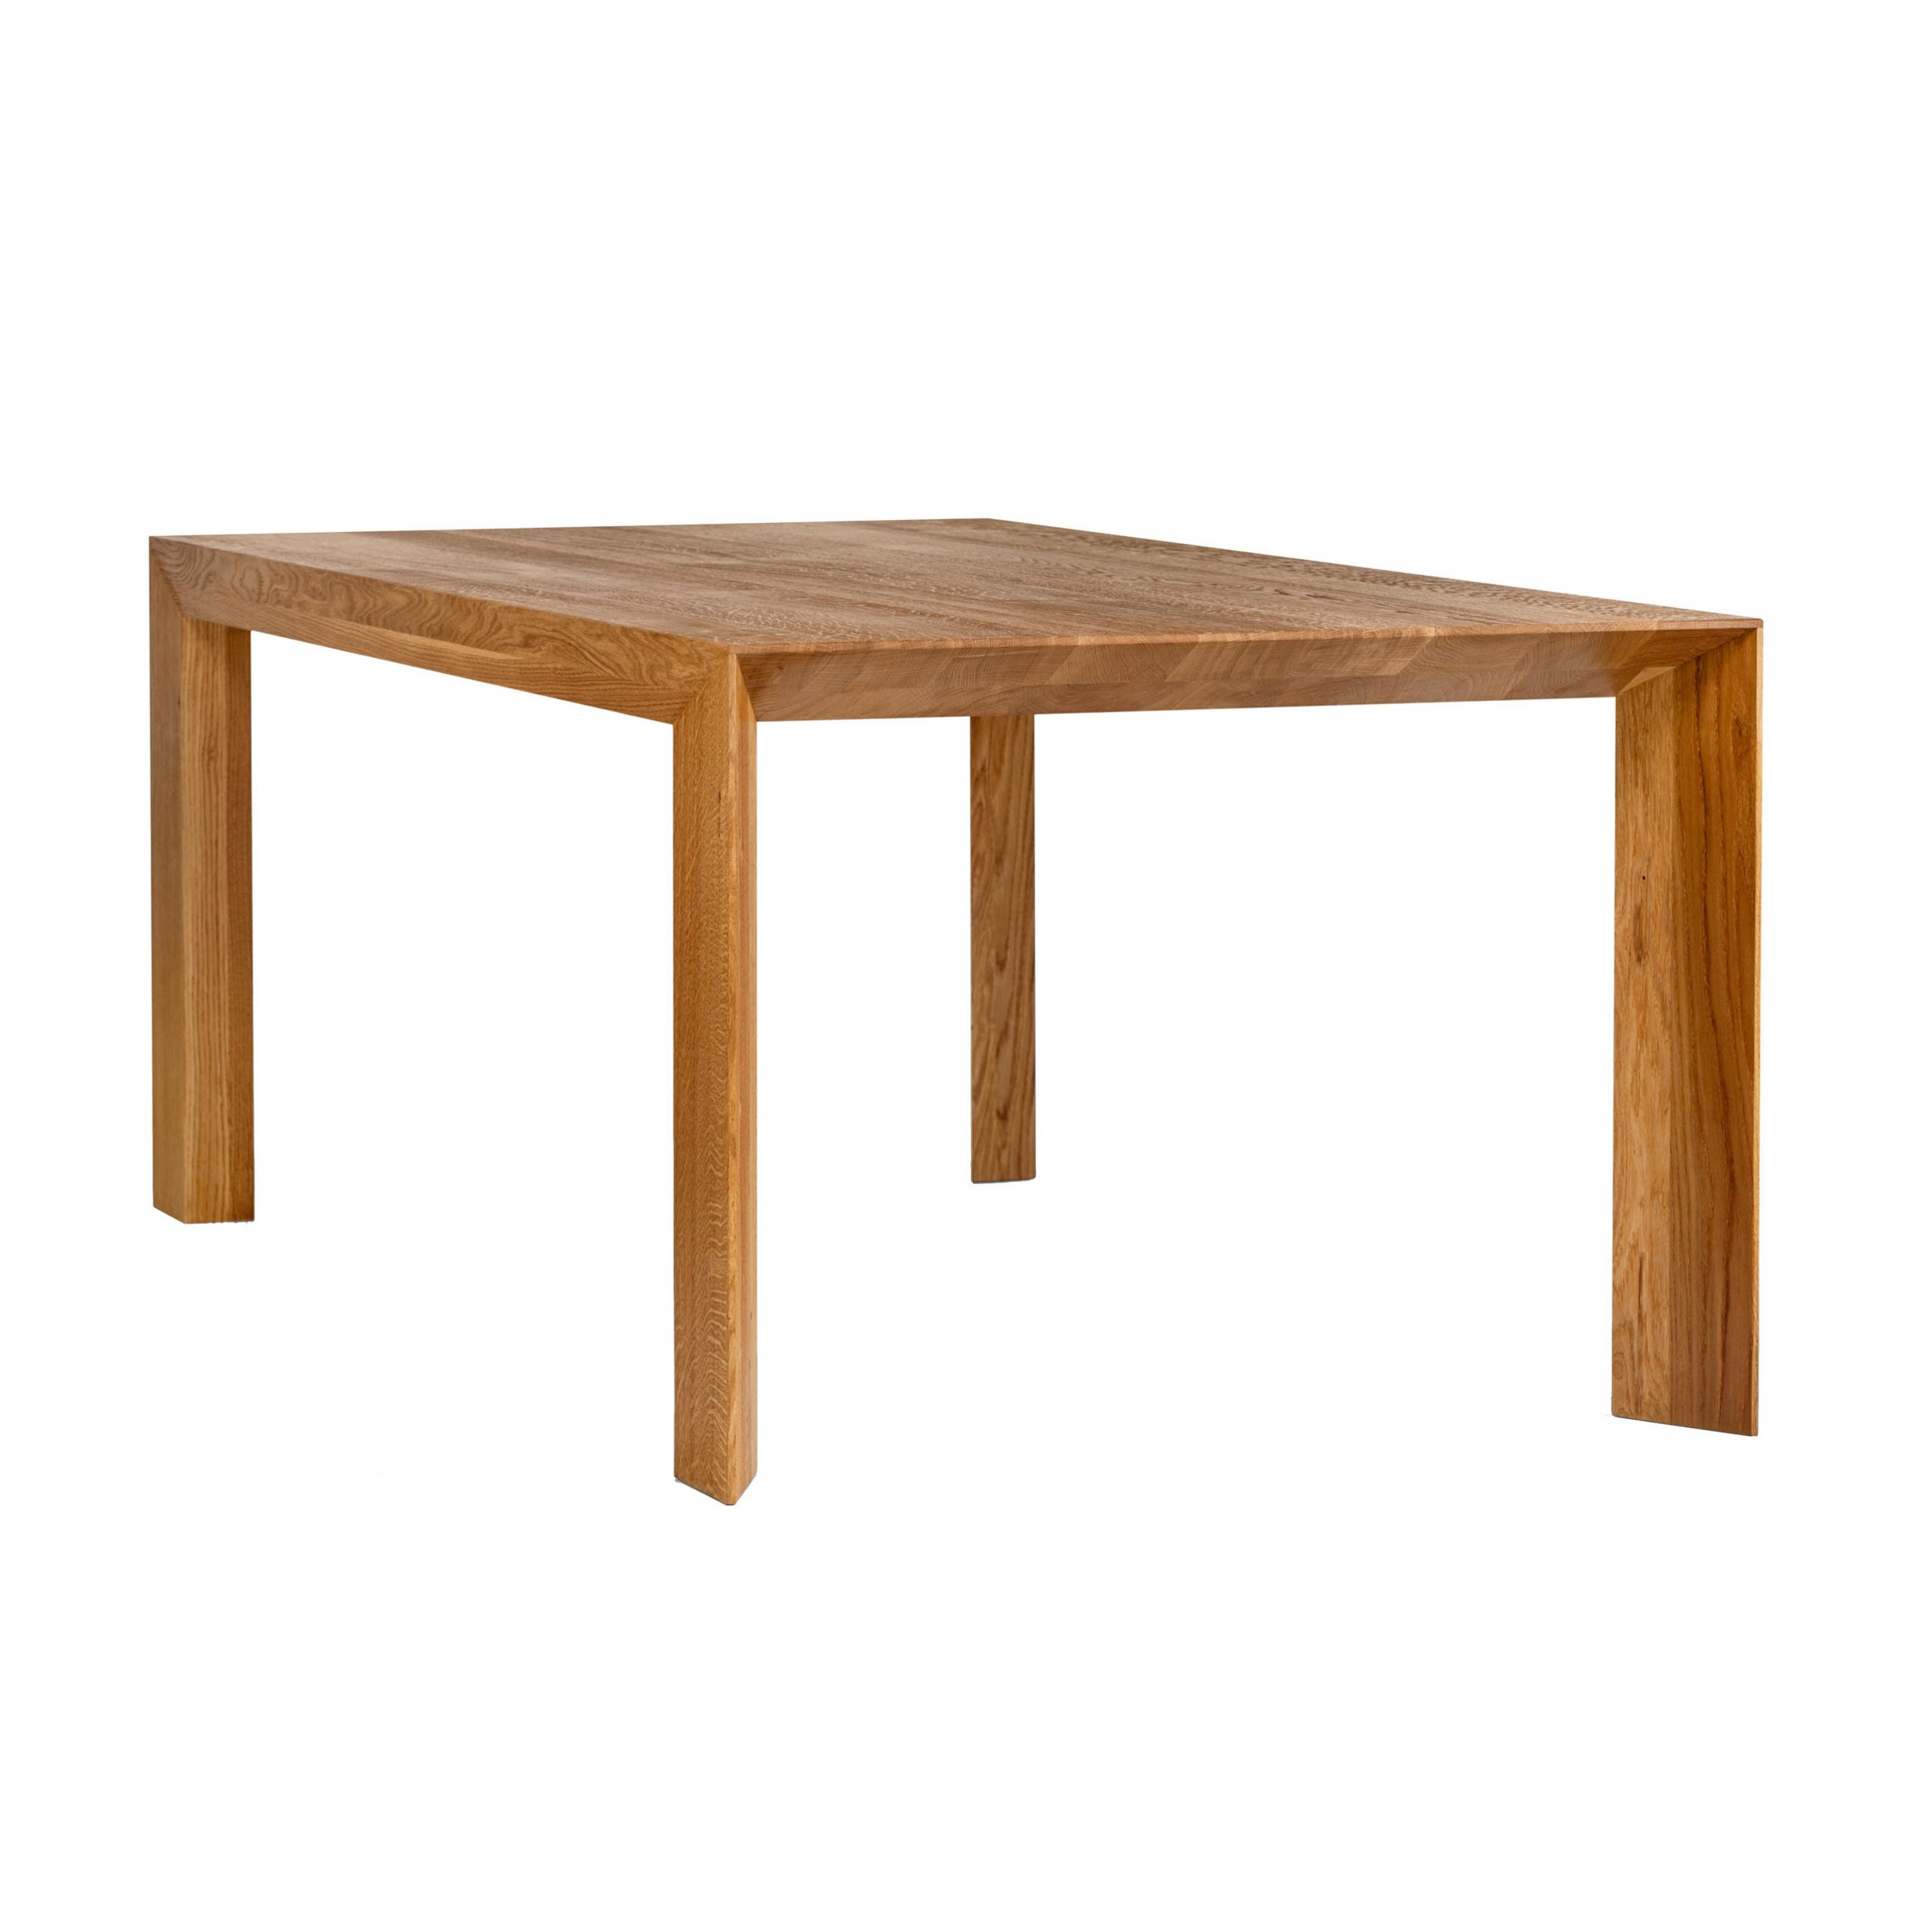 Ot Table – Dining Tables From Trapa | Architonic Inside Most Popular Ingred Extending Dining Tables (View 5 of 25)